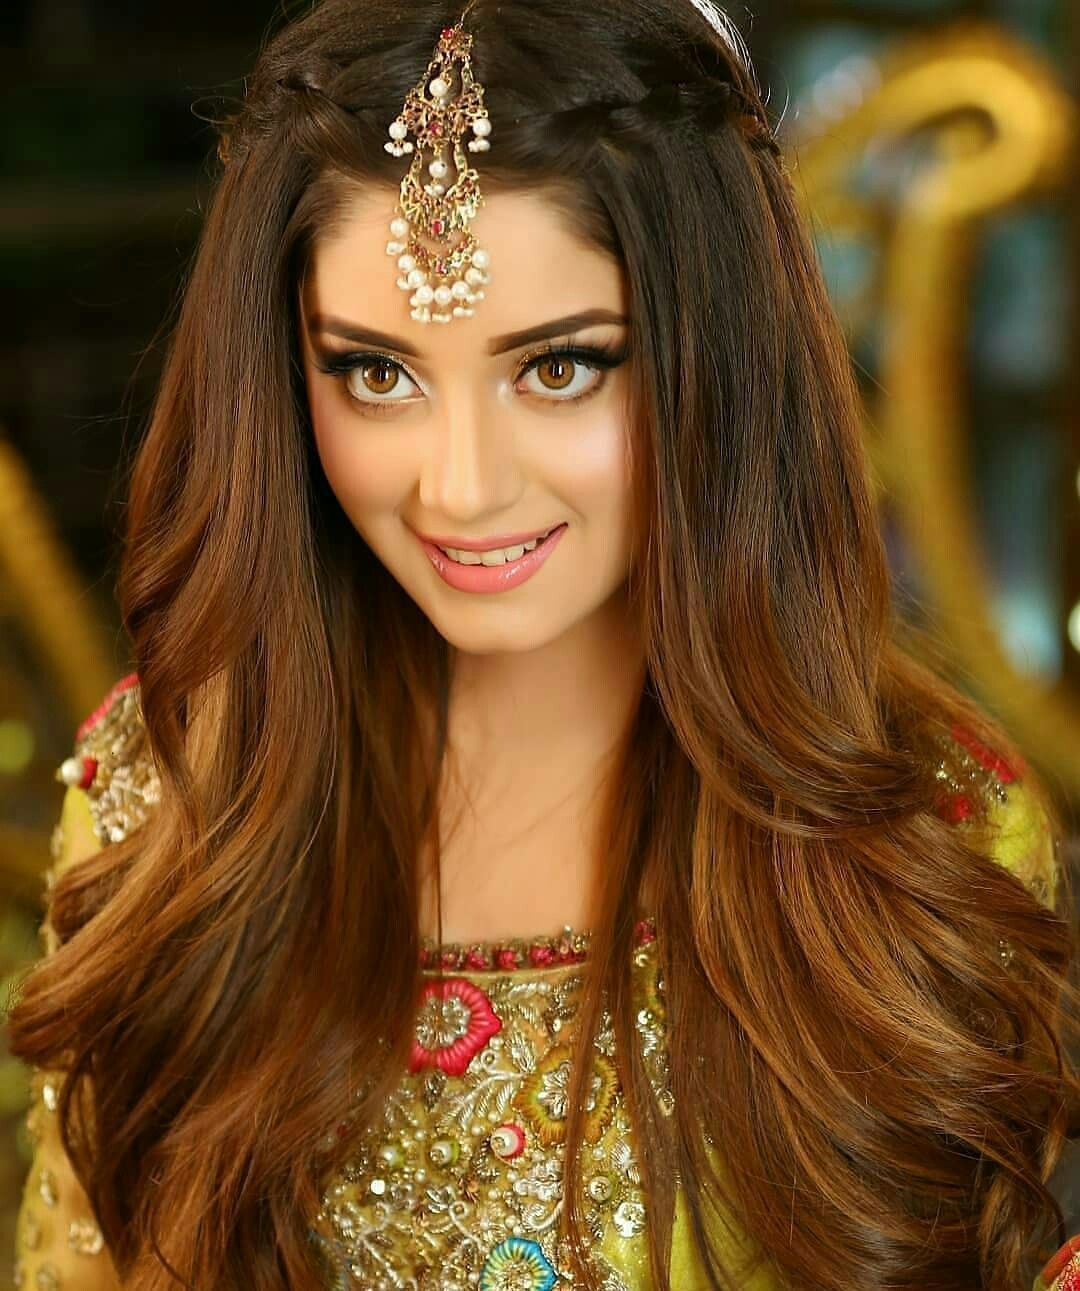 Alizy Eyemakeuptips Engagement Hairstyles Hair Styles Indian Wedding Hairstyles